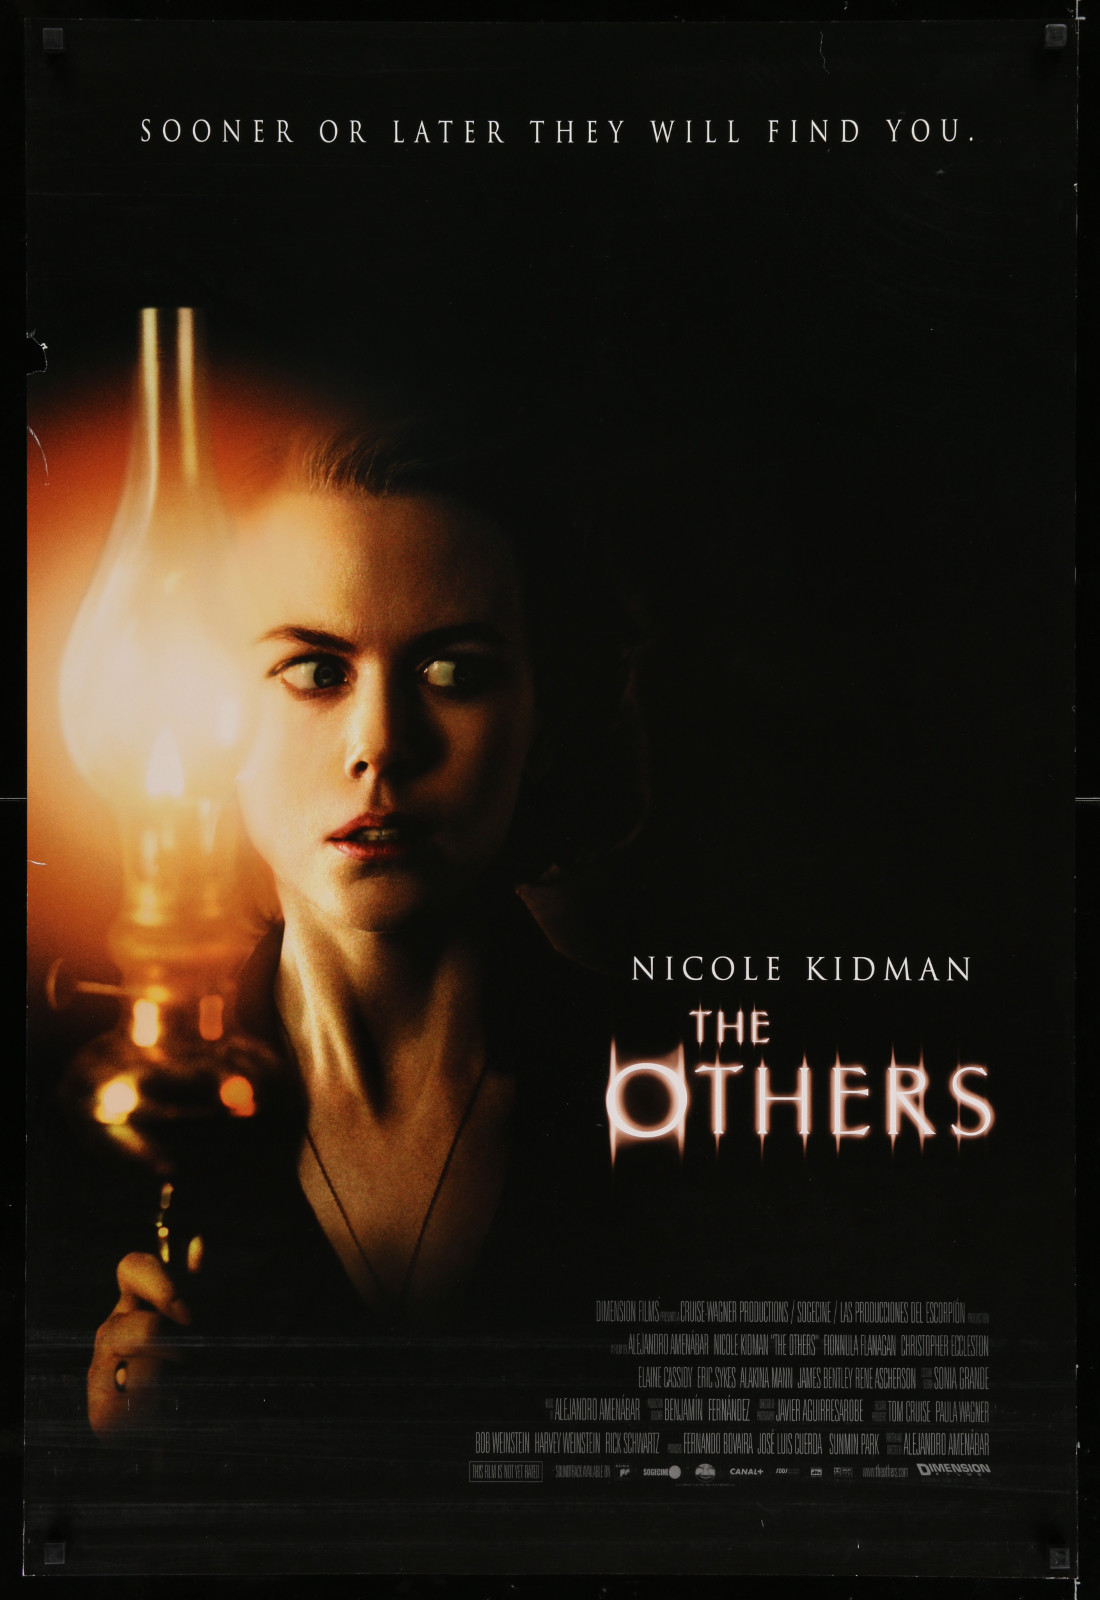 The Others 2A446 A Part Of A Lot 17 Unfolded Mostly Double-Sided 27X40 One-Sheets '90S-00S Great Movie Images!